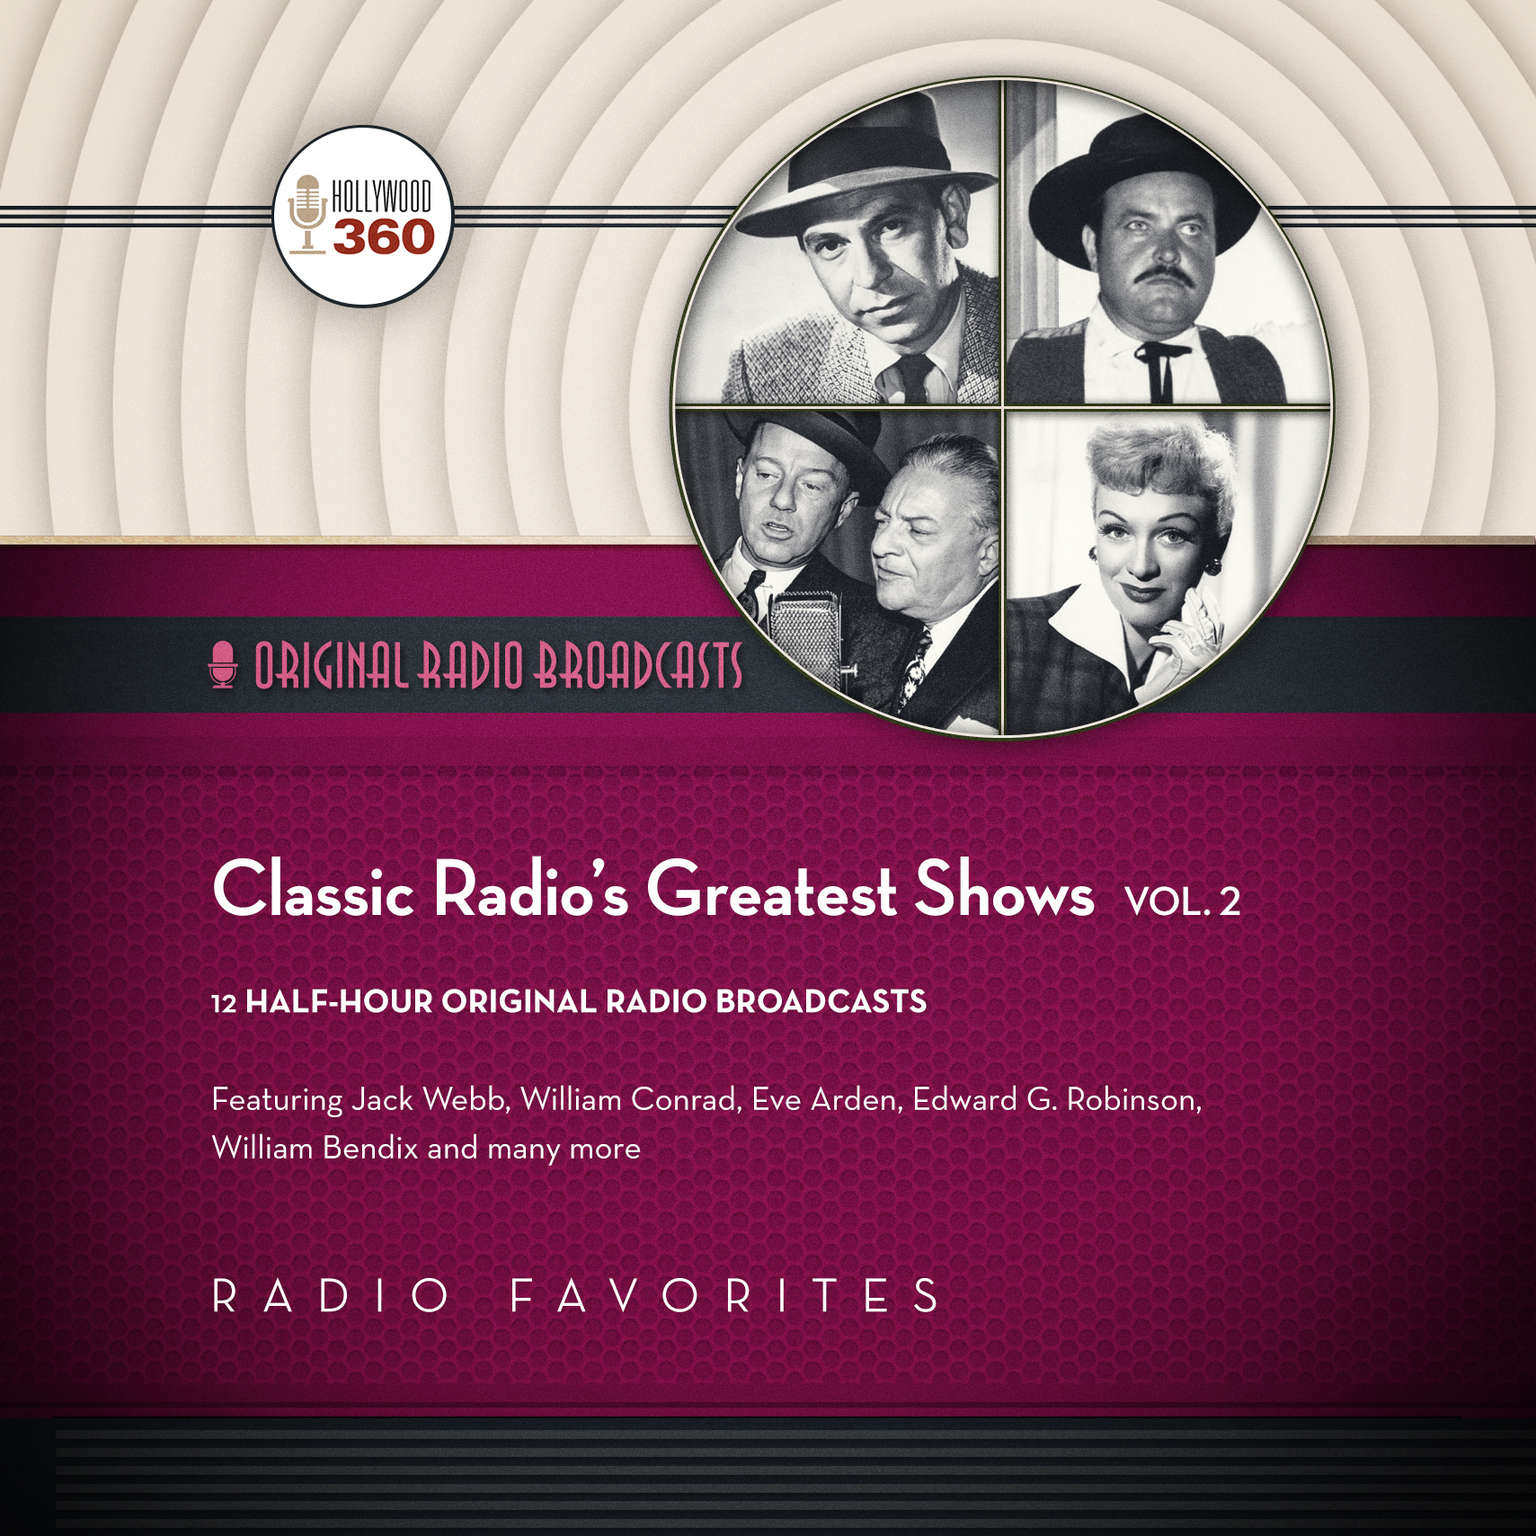 Classic Radio's Greatest Shows, Vol. 2 Audiobook, by Hollywood 360